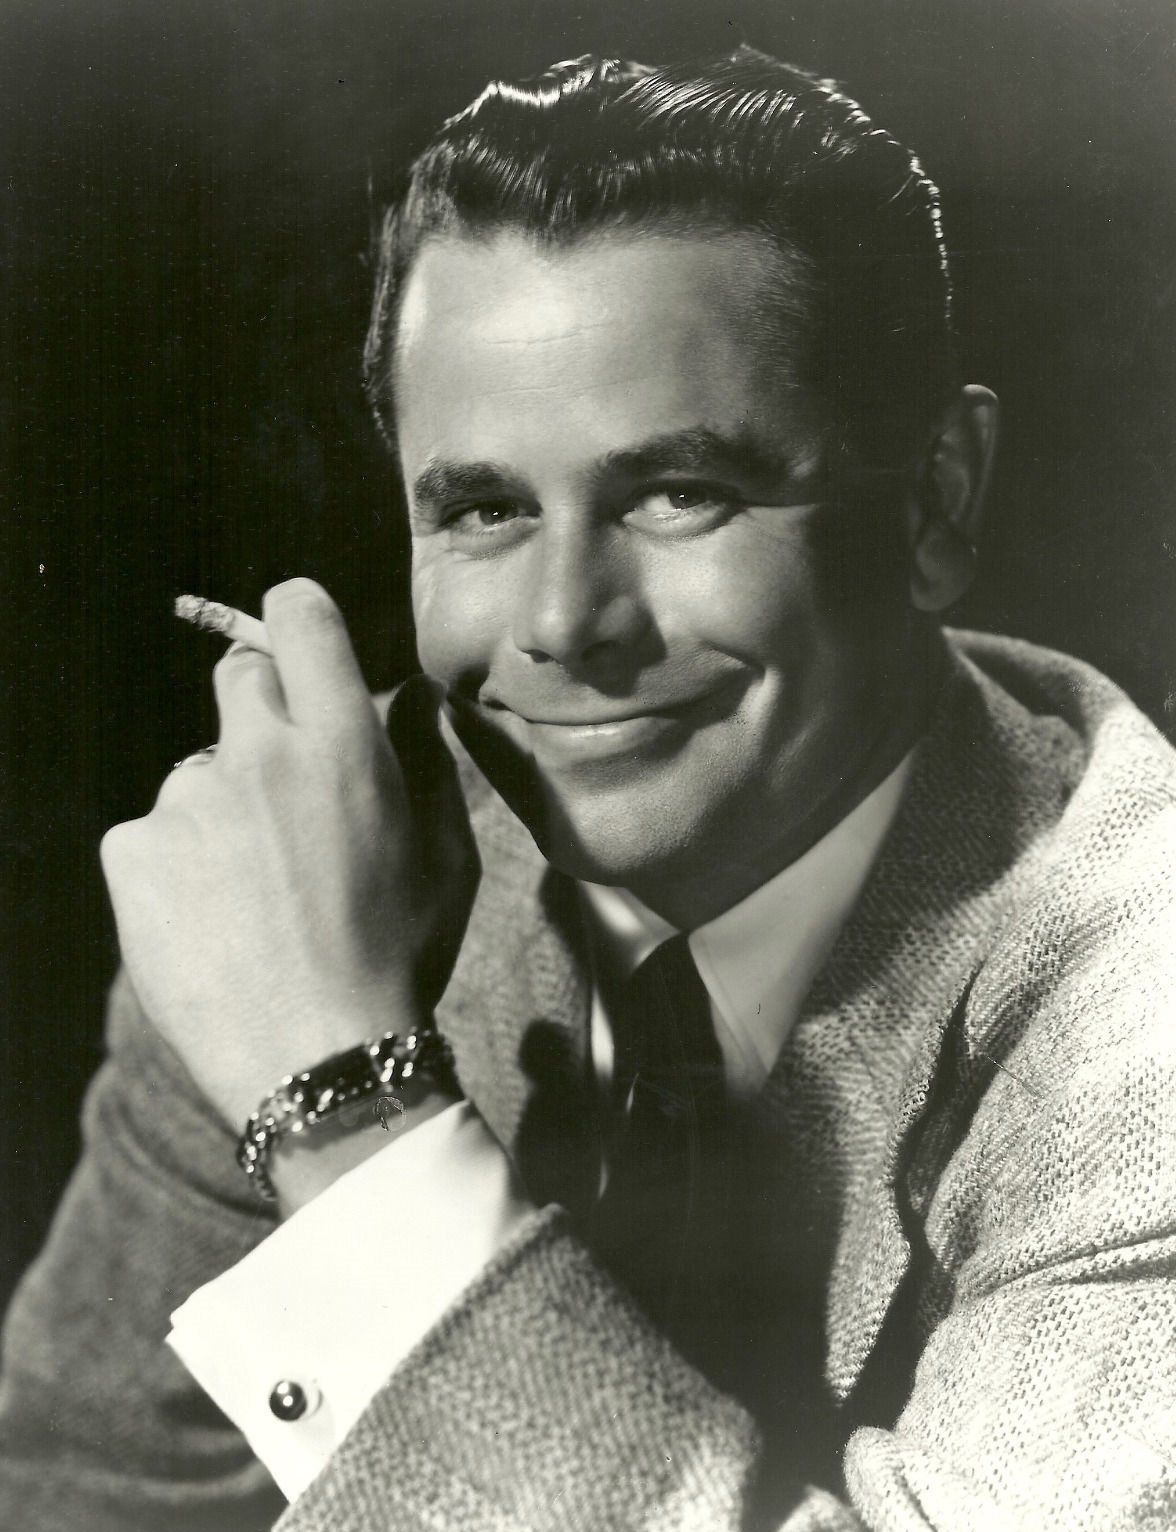 Glenn Ford in The Doctor and the Girl (1949)